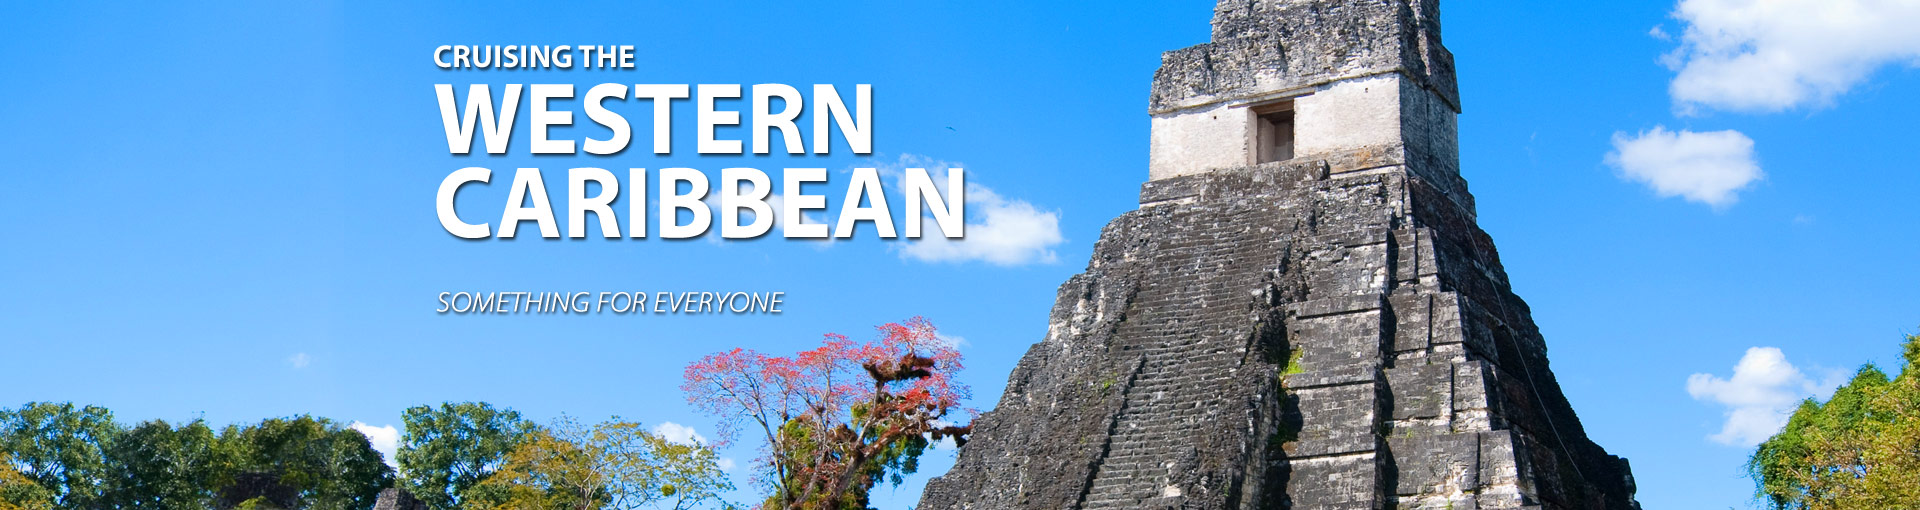 Western Caribbean Cruises full of natural beauty